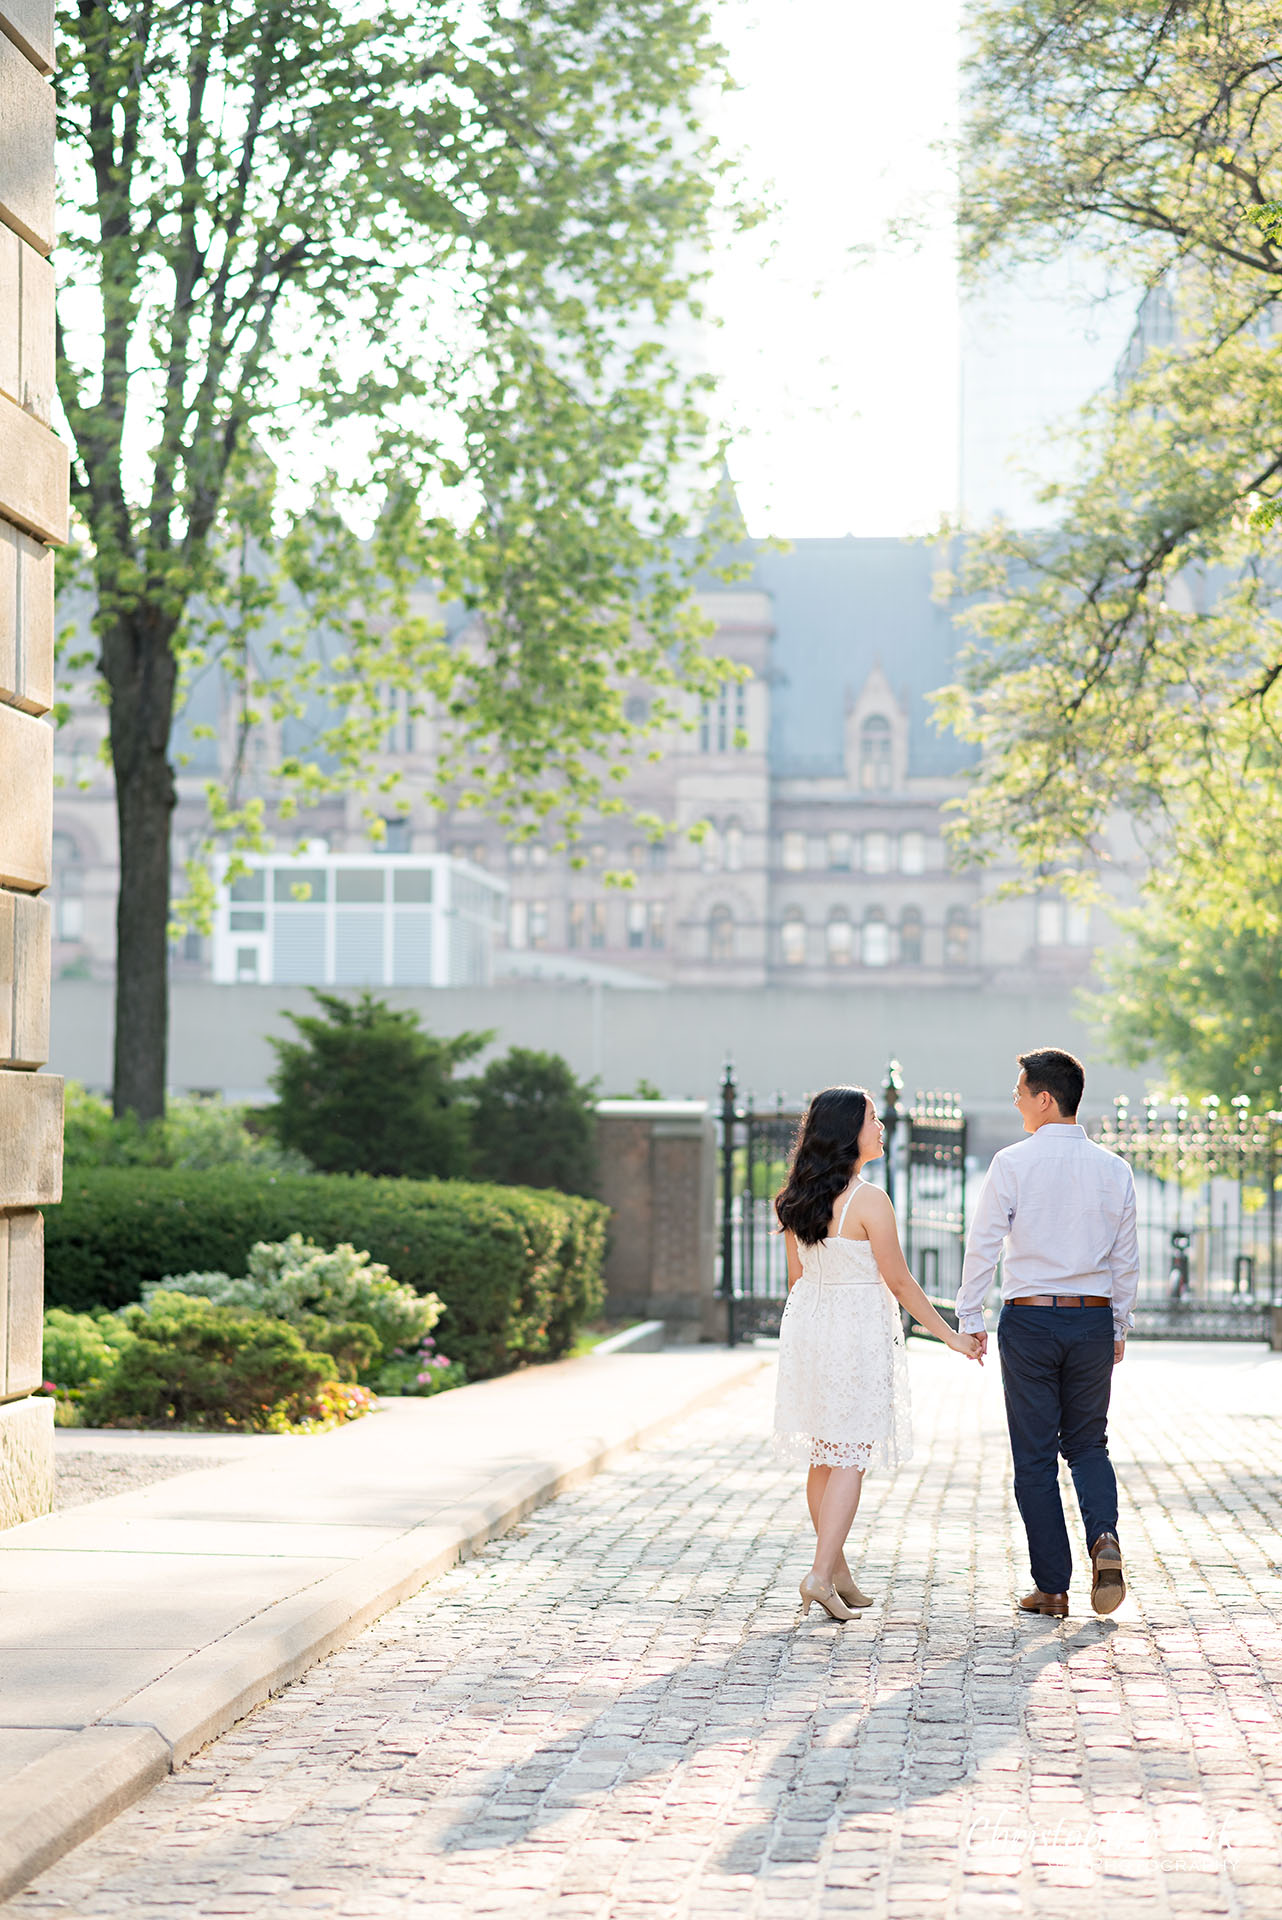 Christopher Luk Wedding Photographer Osgoode Hall Toronto Bride Groom Cobblestone Hug Holding Each Other Intimate Holding Hands Walking Together Sunrise Shadow Portrait Natural Candid Photojournalistic